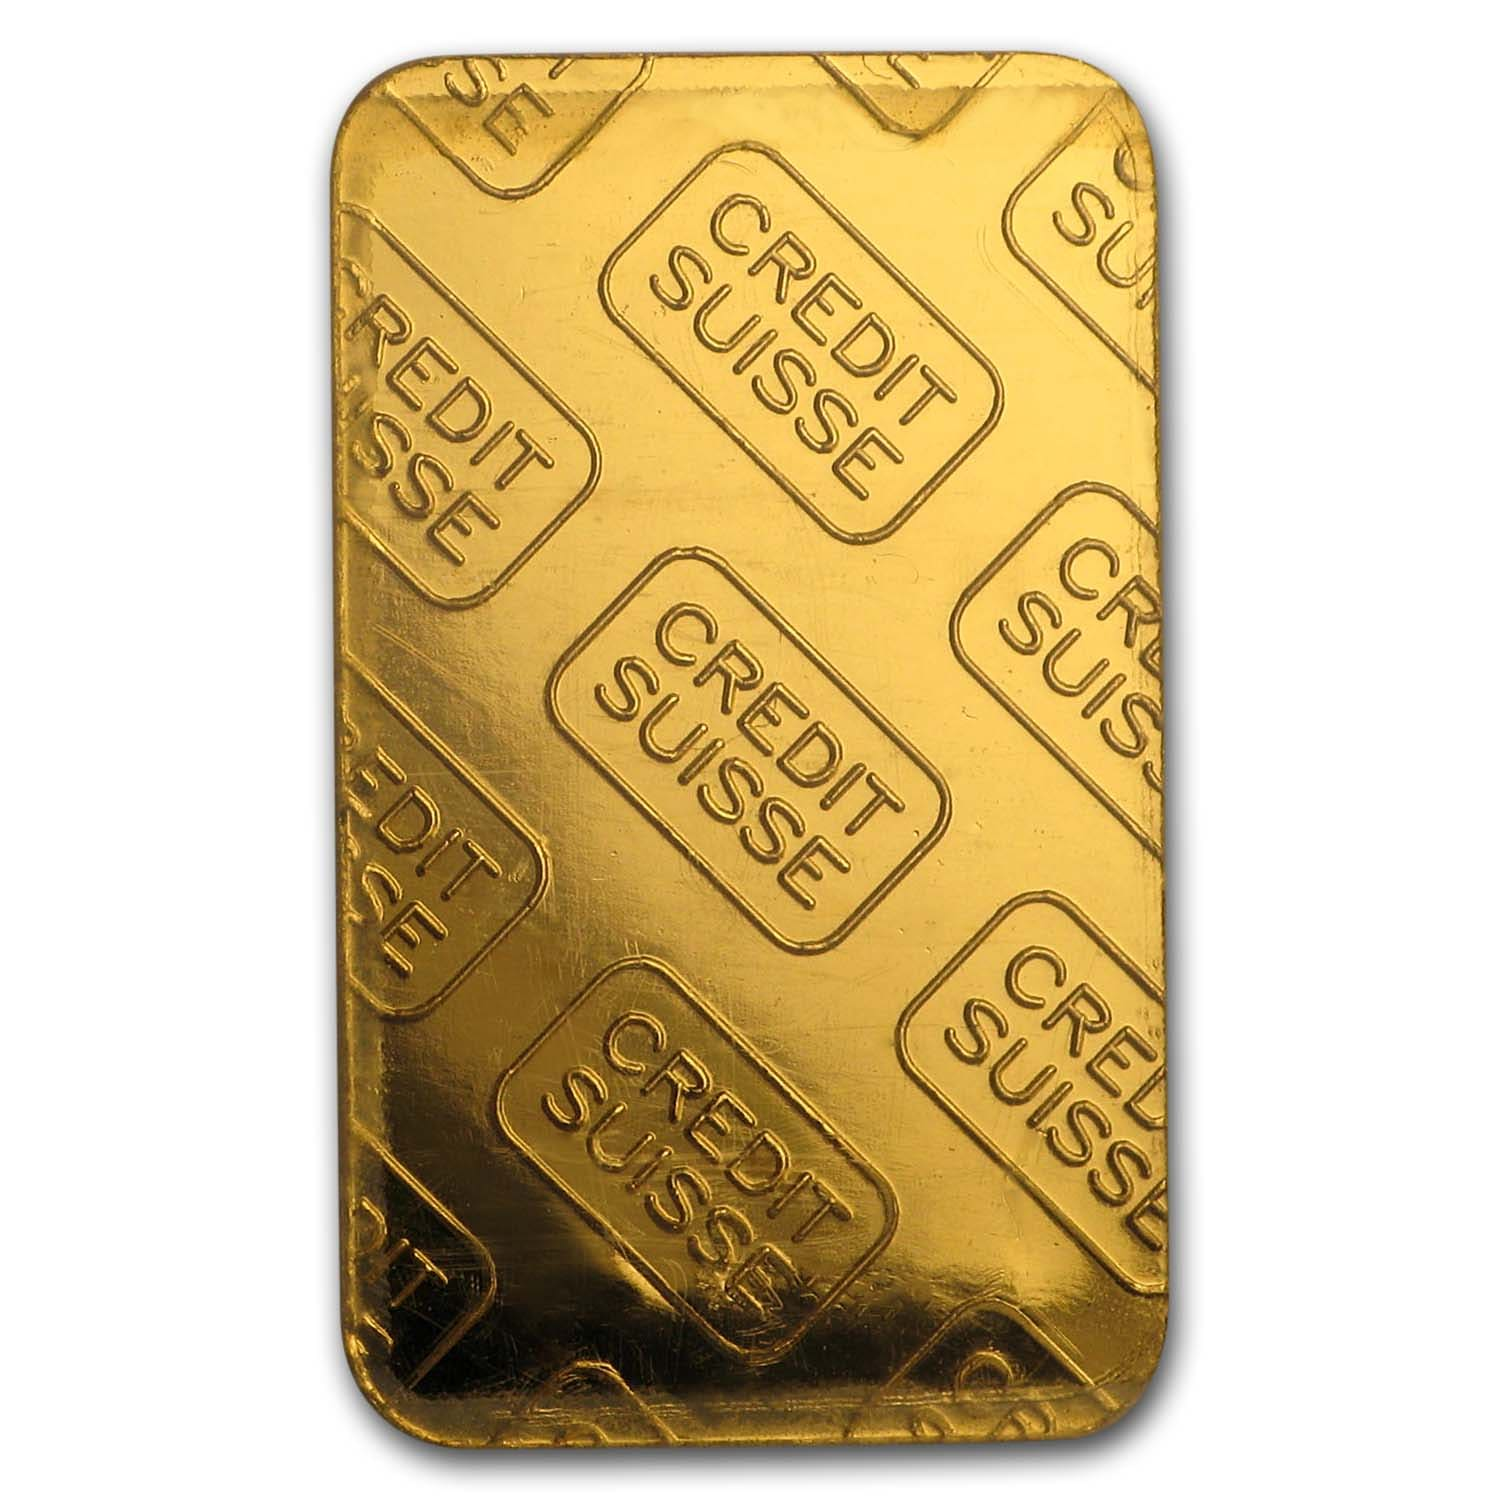 5 gram Gold Bars - Credit Suisse (Vintage Design) (In Assay)